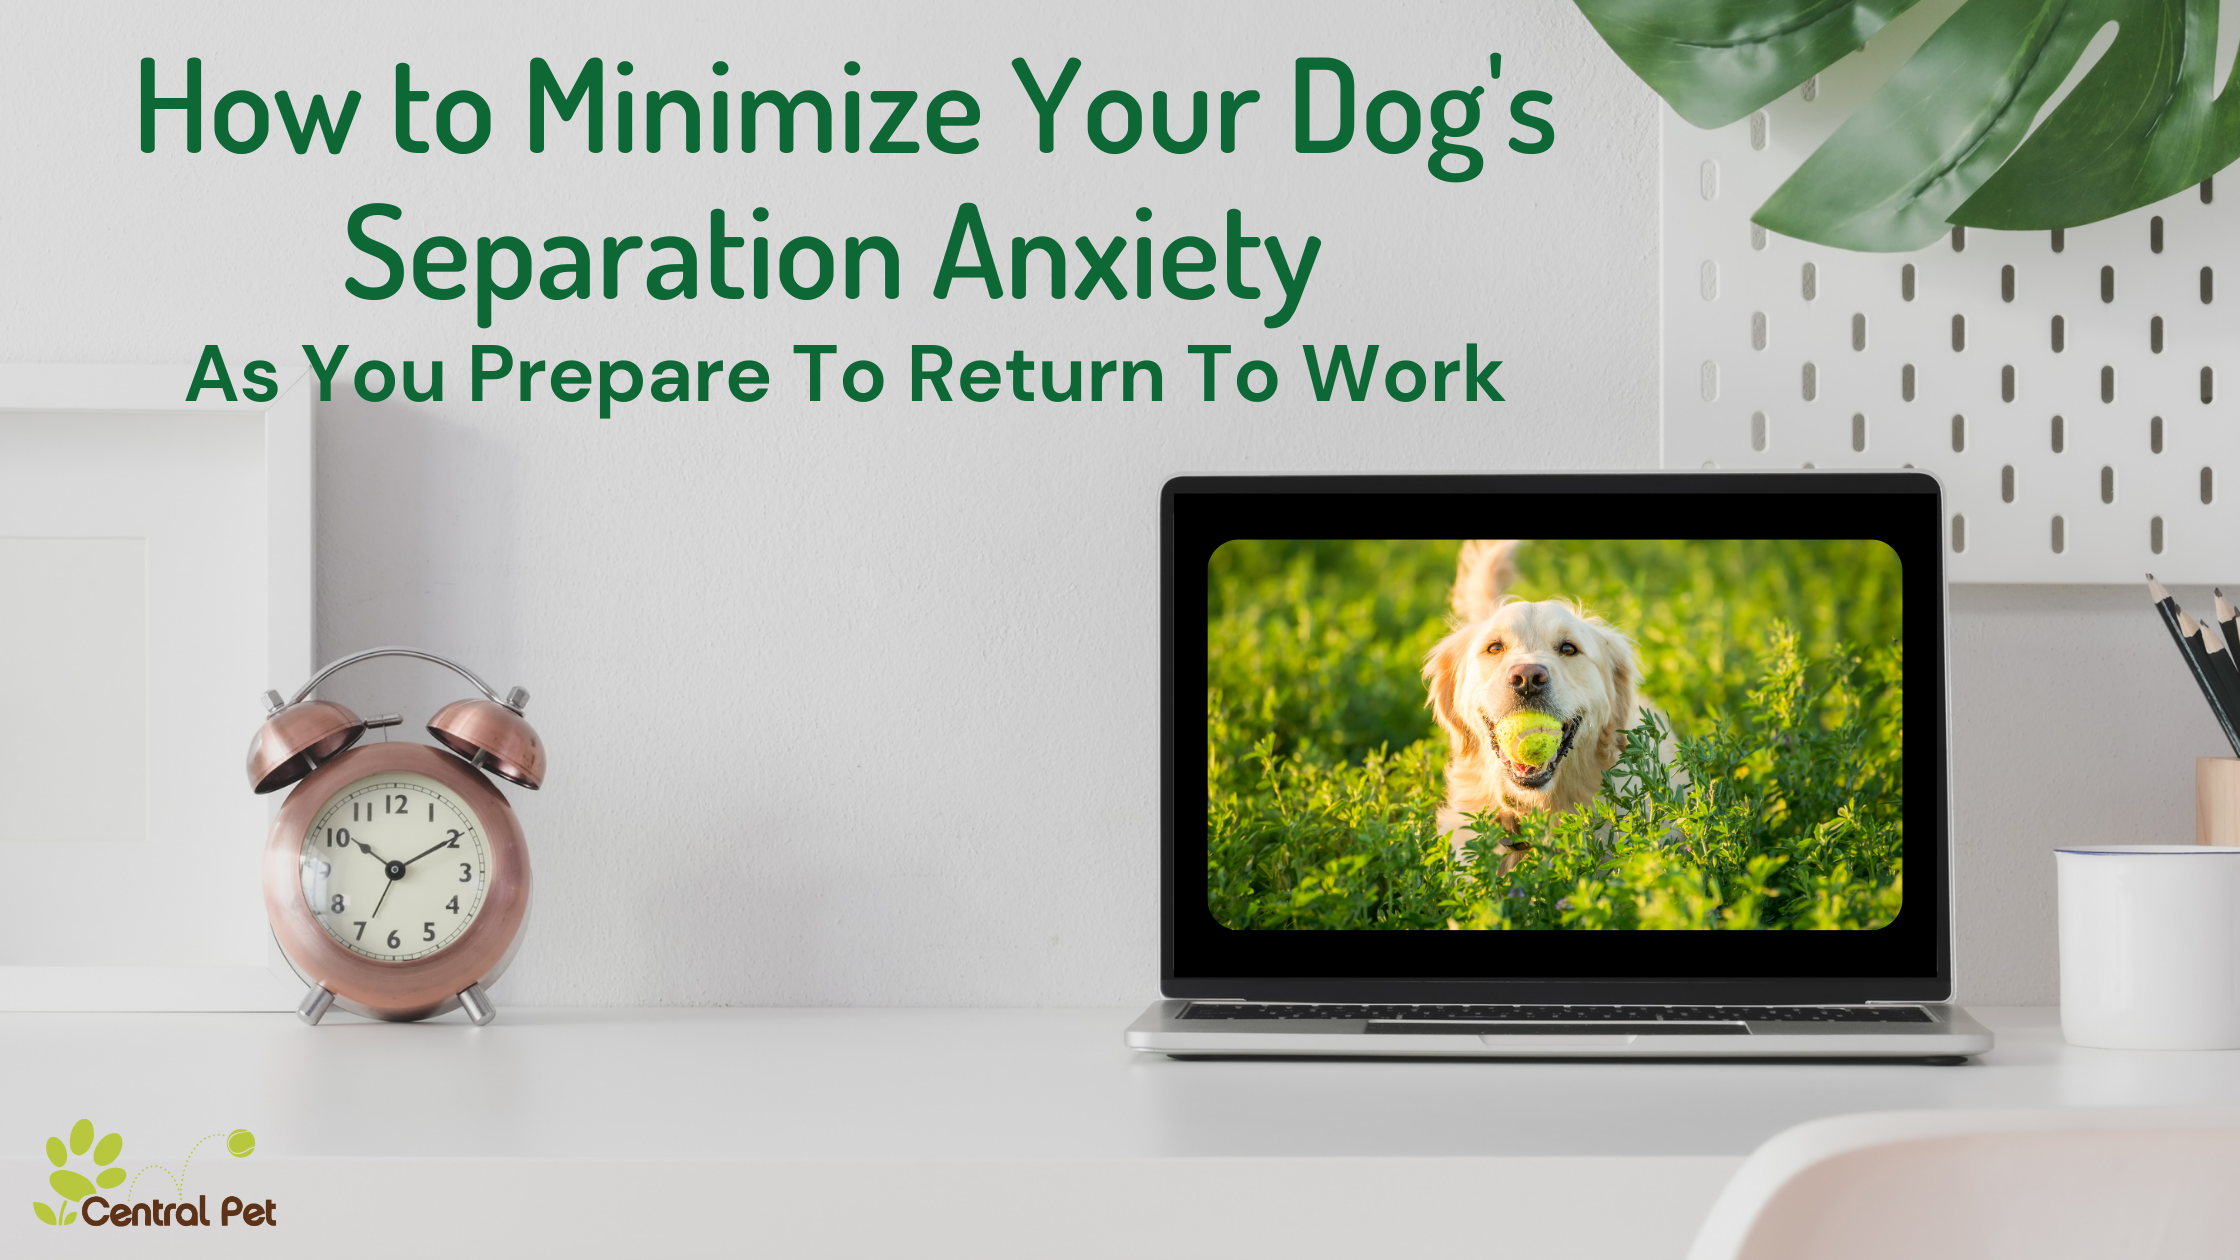 How to Minimize Your Dog's Anxiety as You Prepare to Return to Work